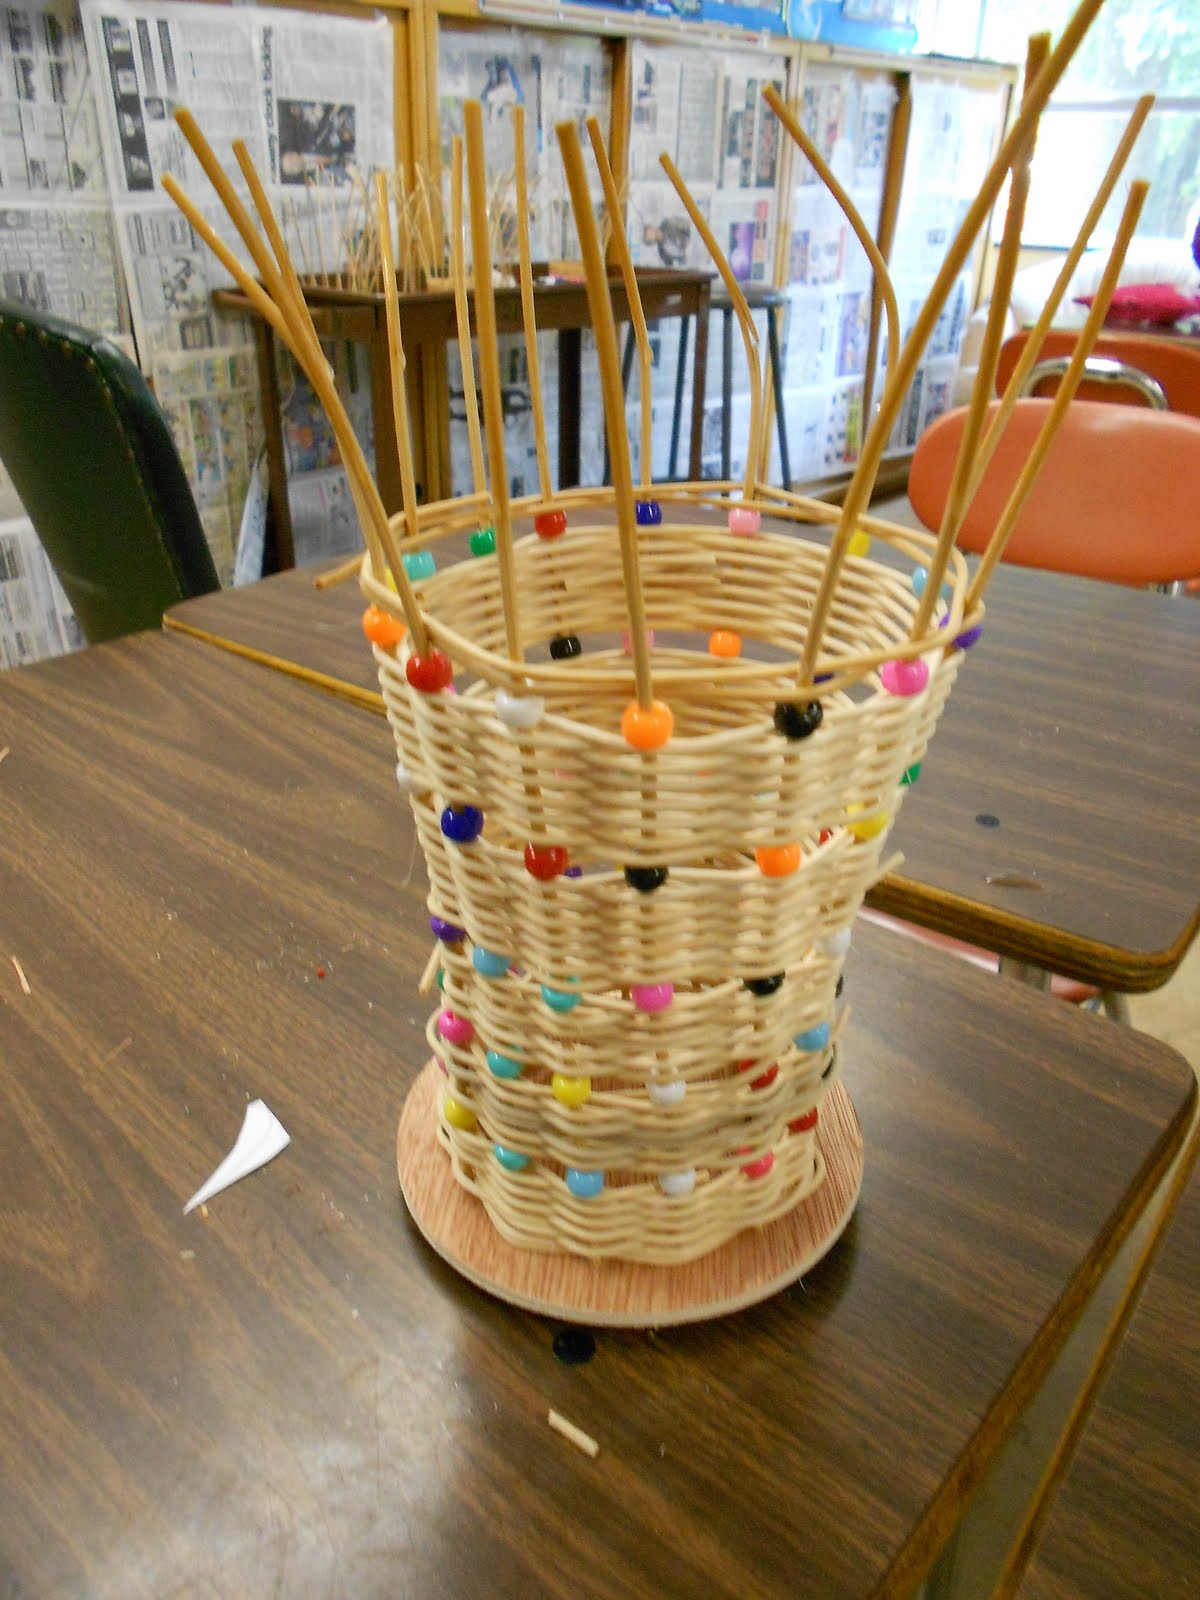 Basket Weaving At Home : Rd craft project completed basket weaving artmuse